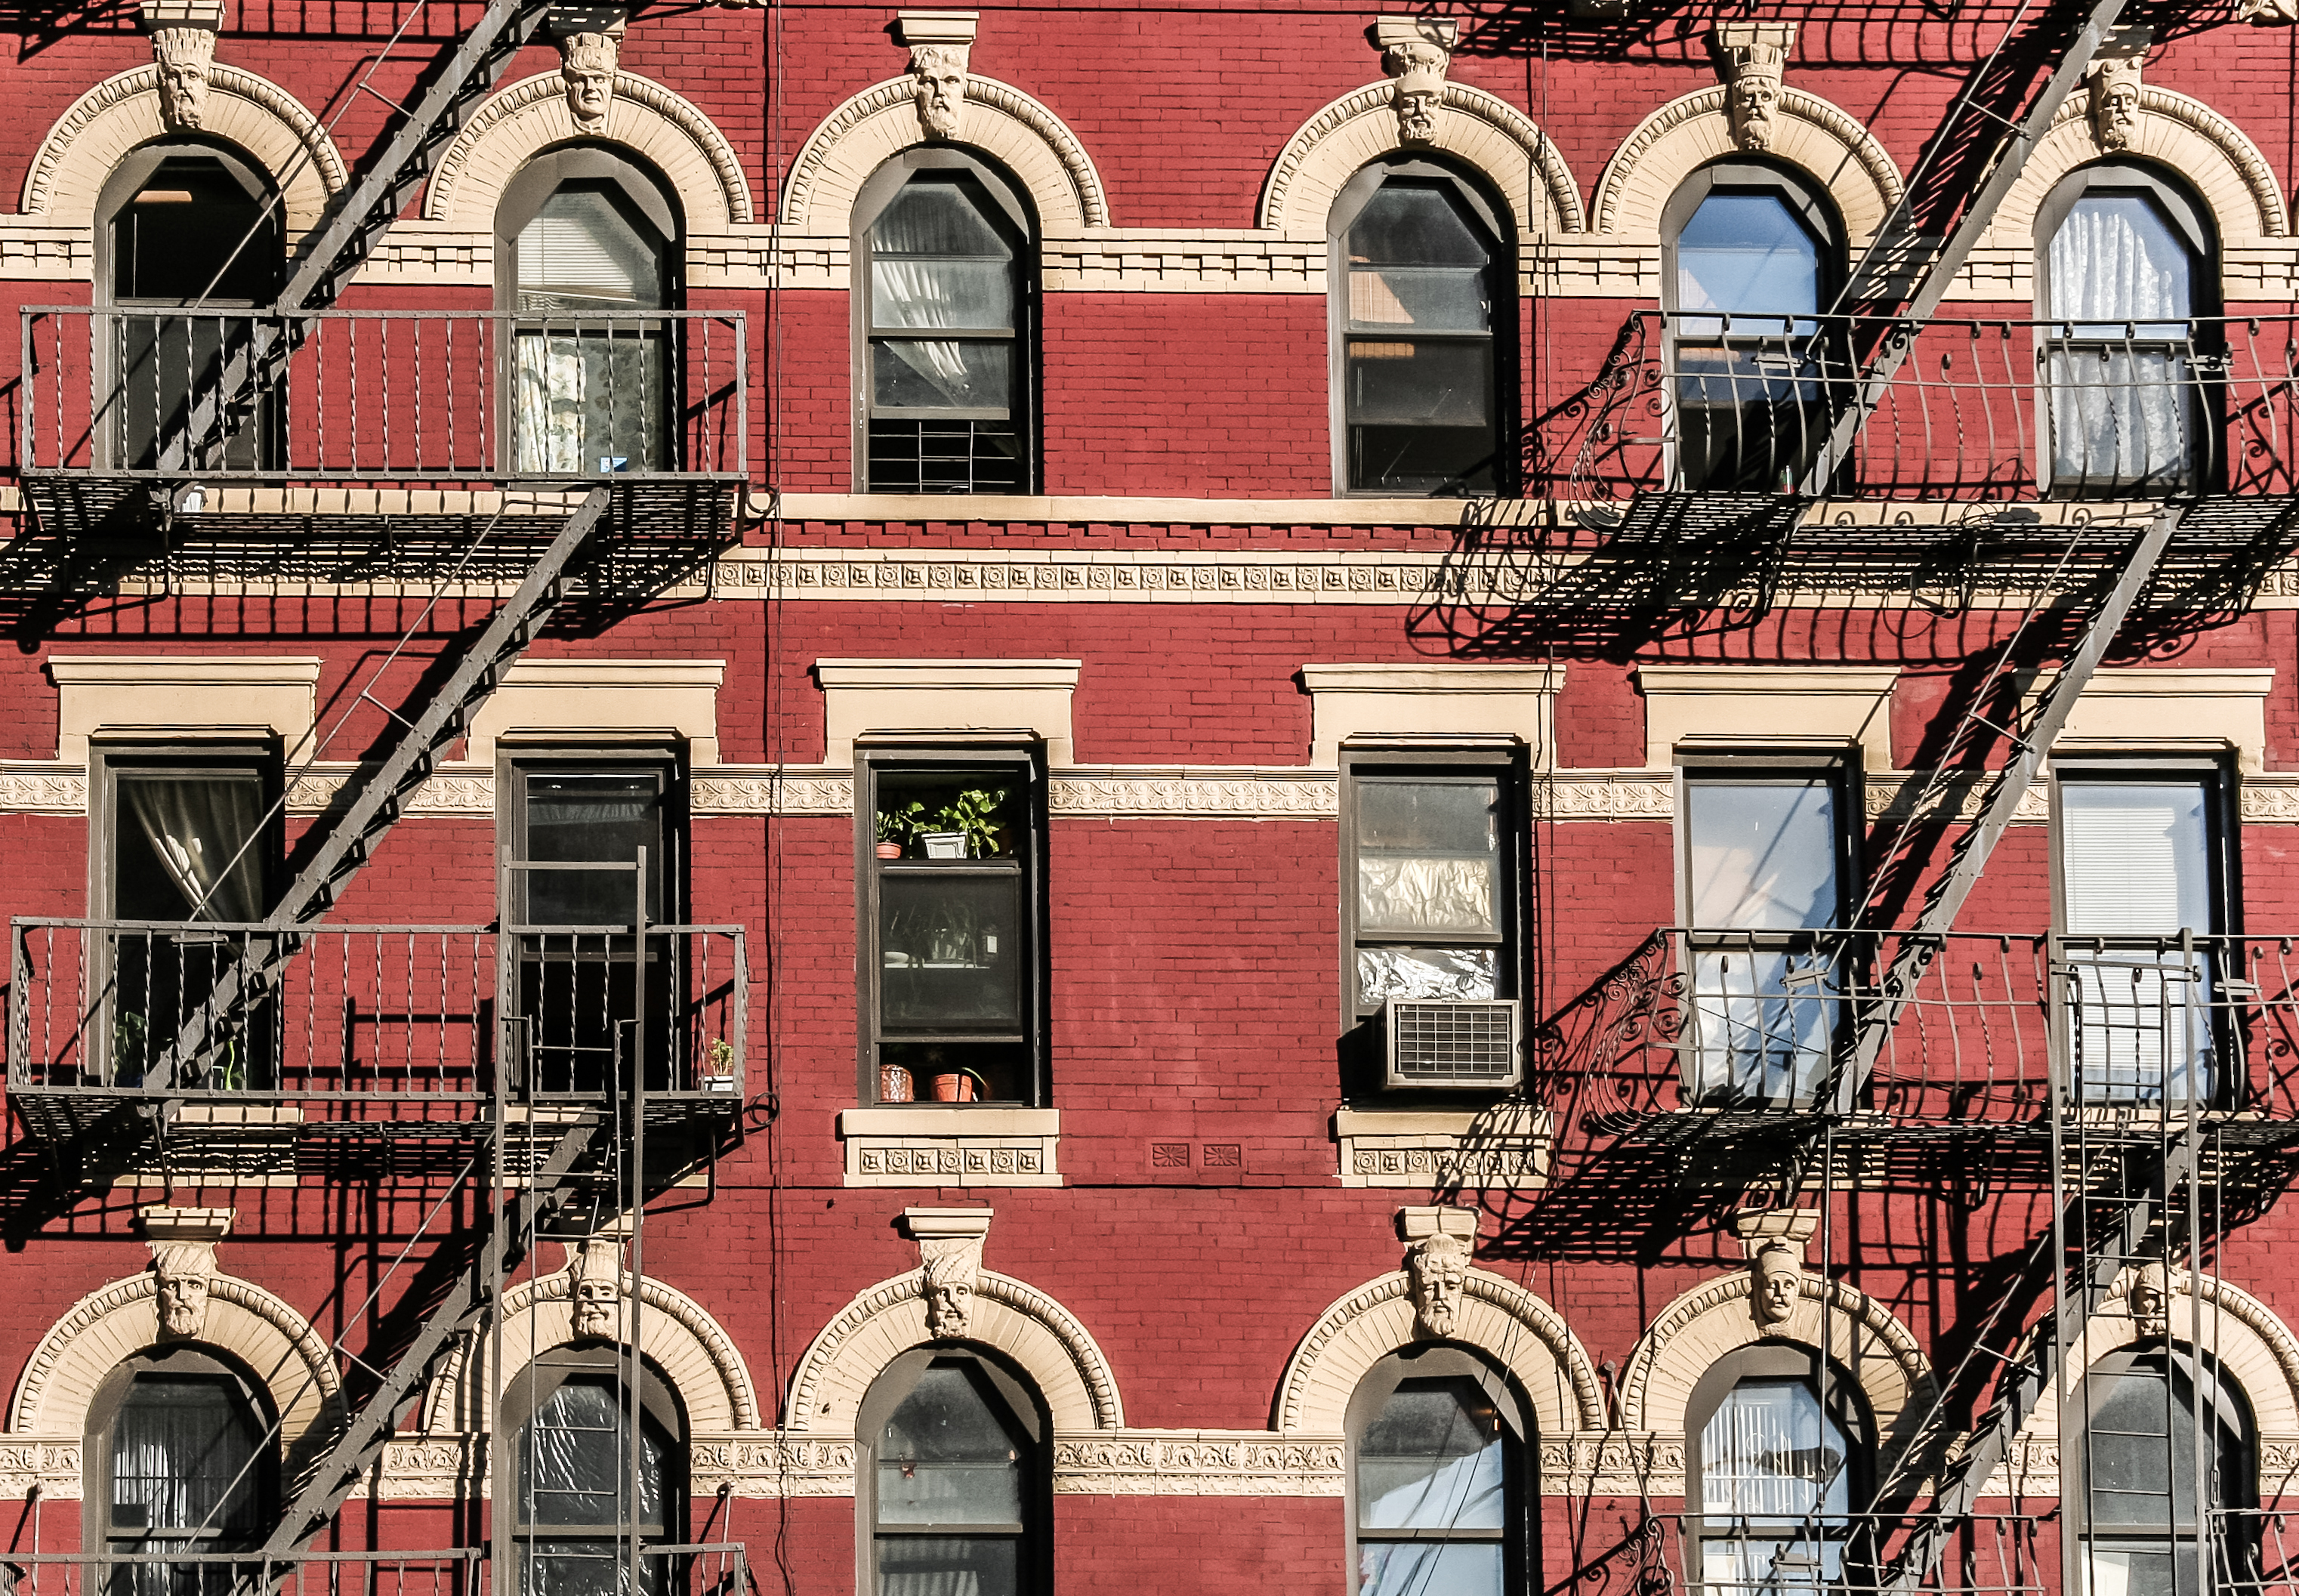 NYC building with several fire escapes.